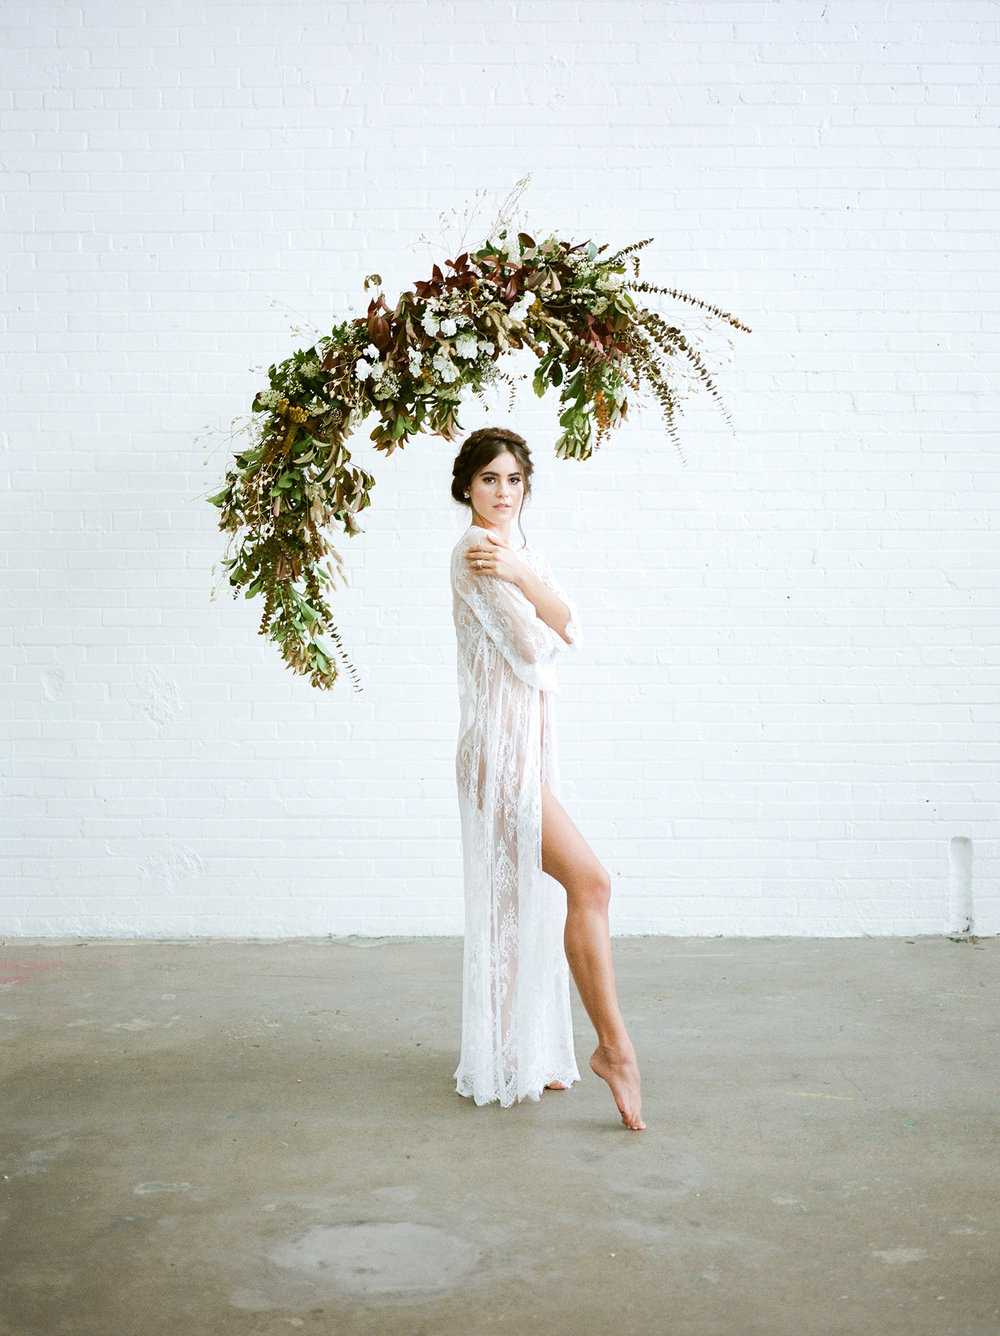 Wedding Floral Design Dallas - Olive Grove Design - Mimimalist Fall Wedding - 00101.jpg